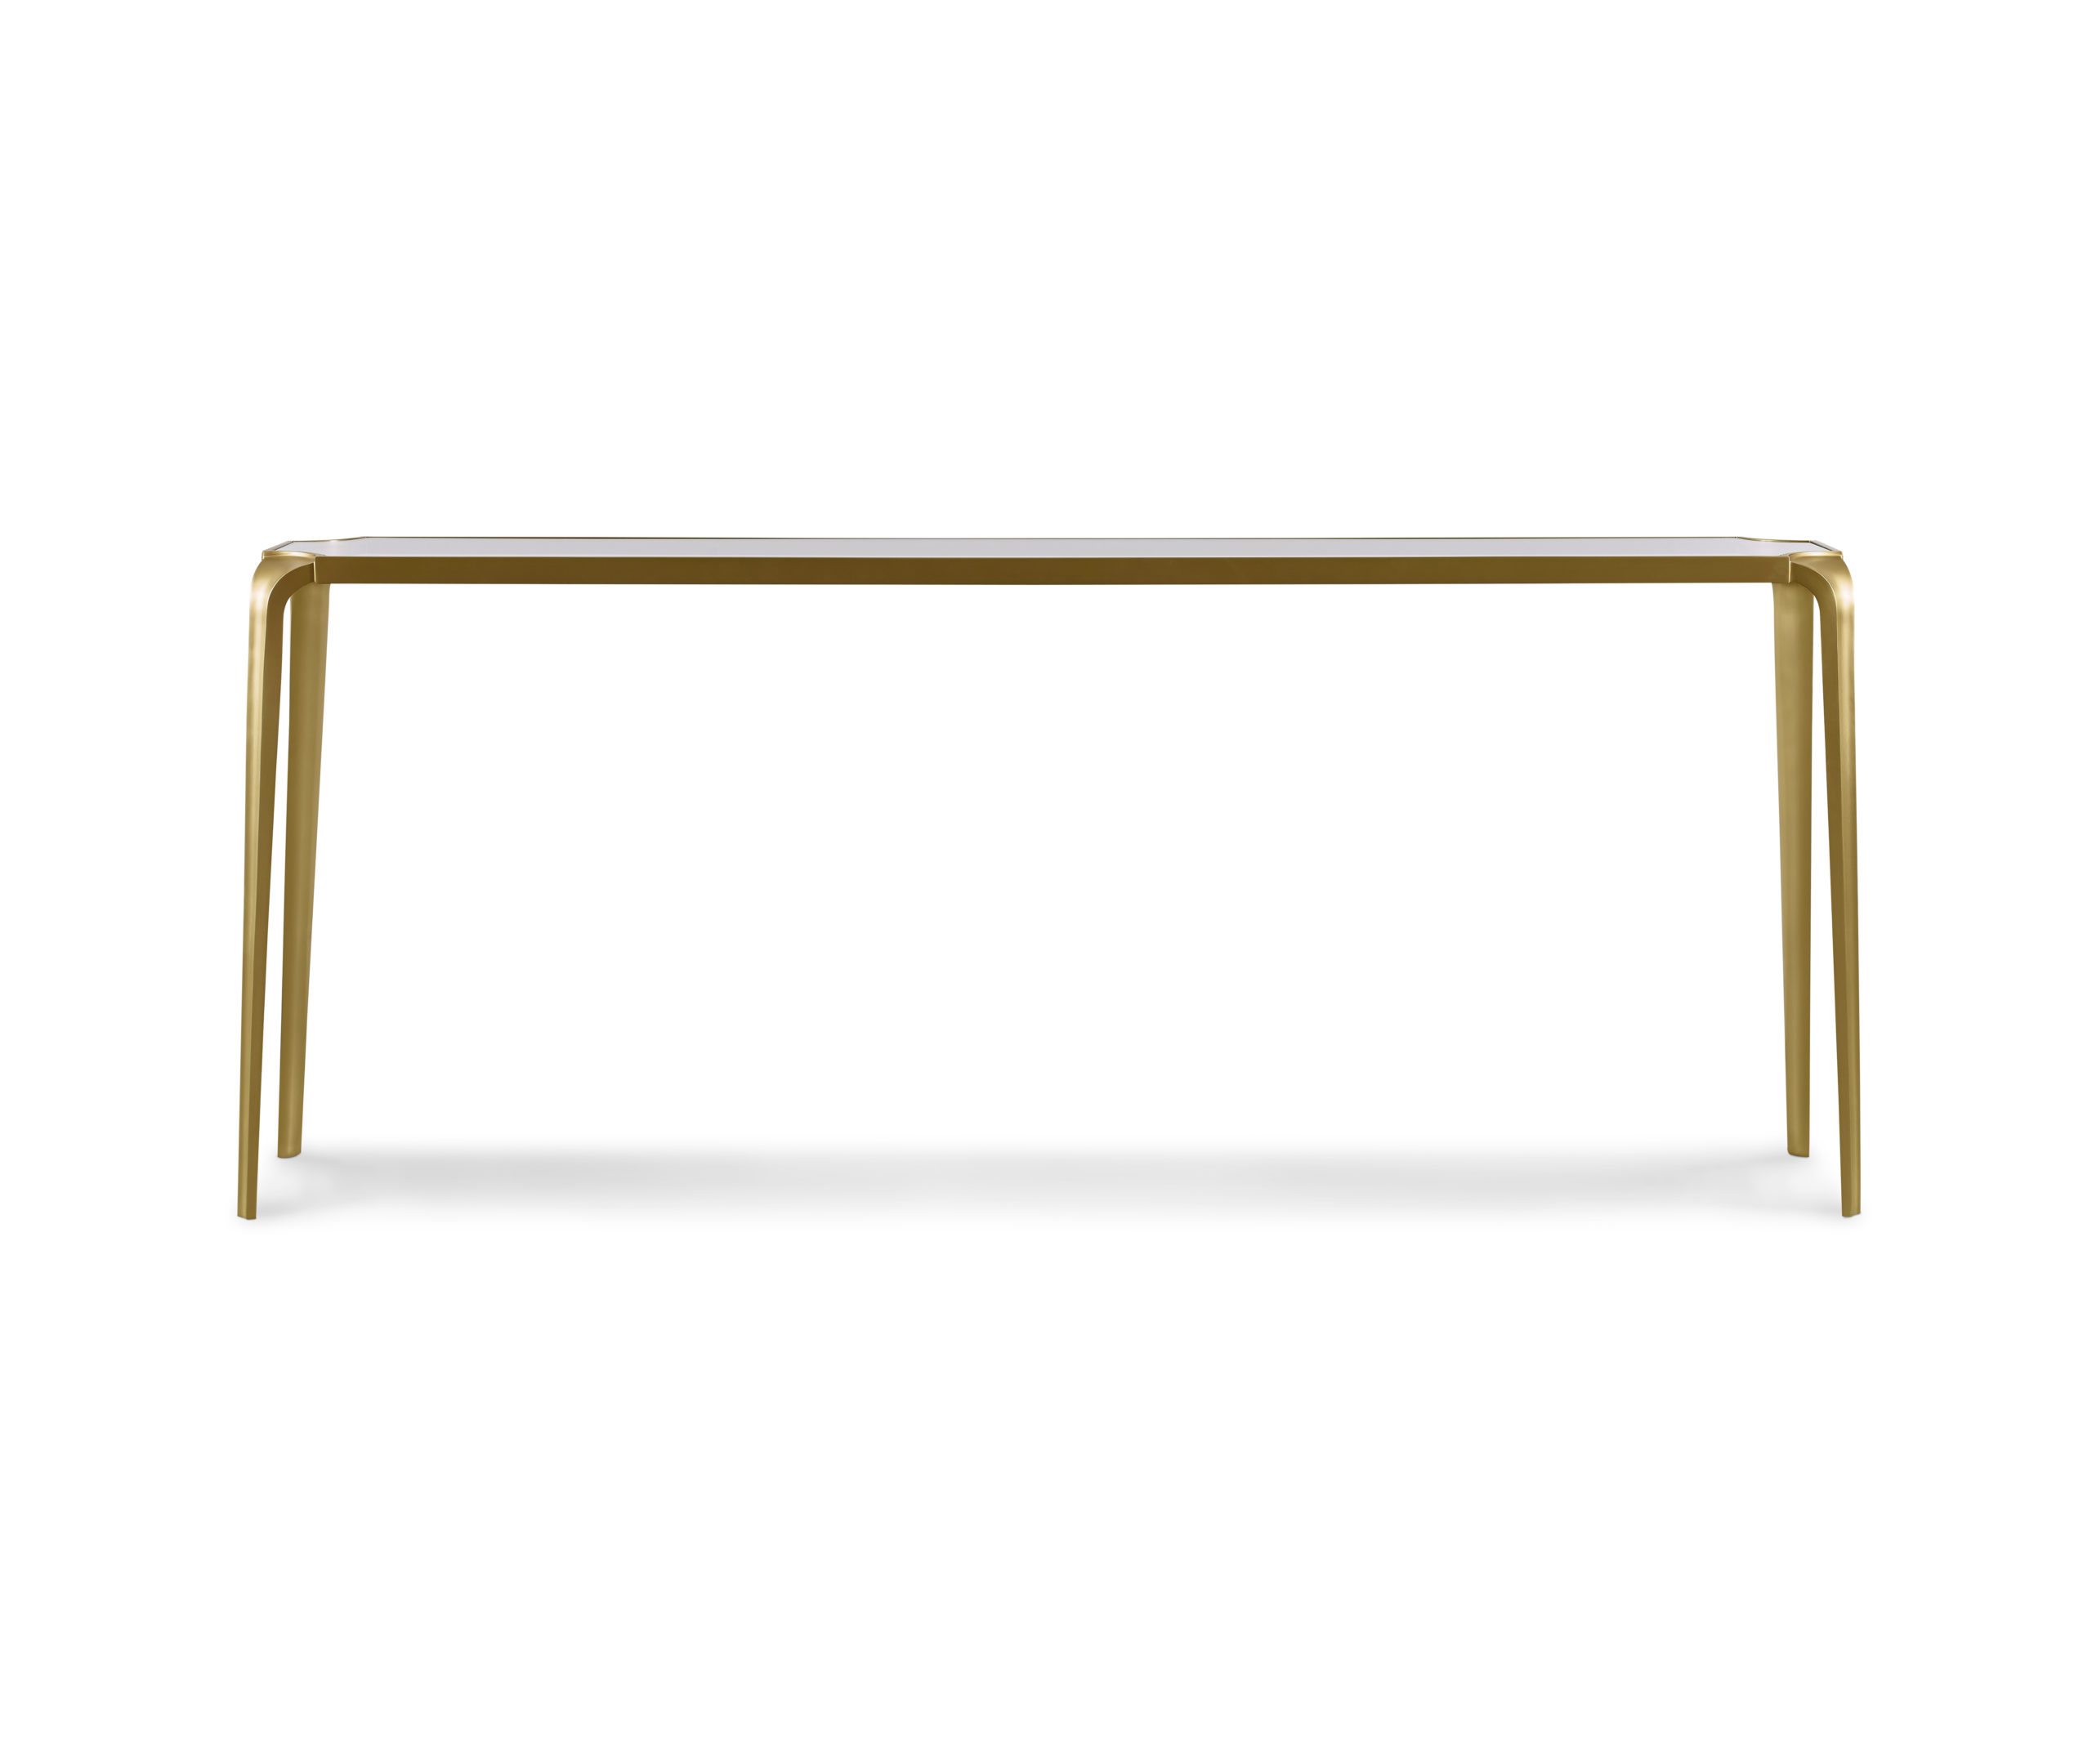 Baker_products_WNWN_lotus_console_table_BAA3065_FRONT-scaled-2